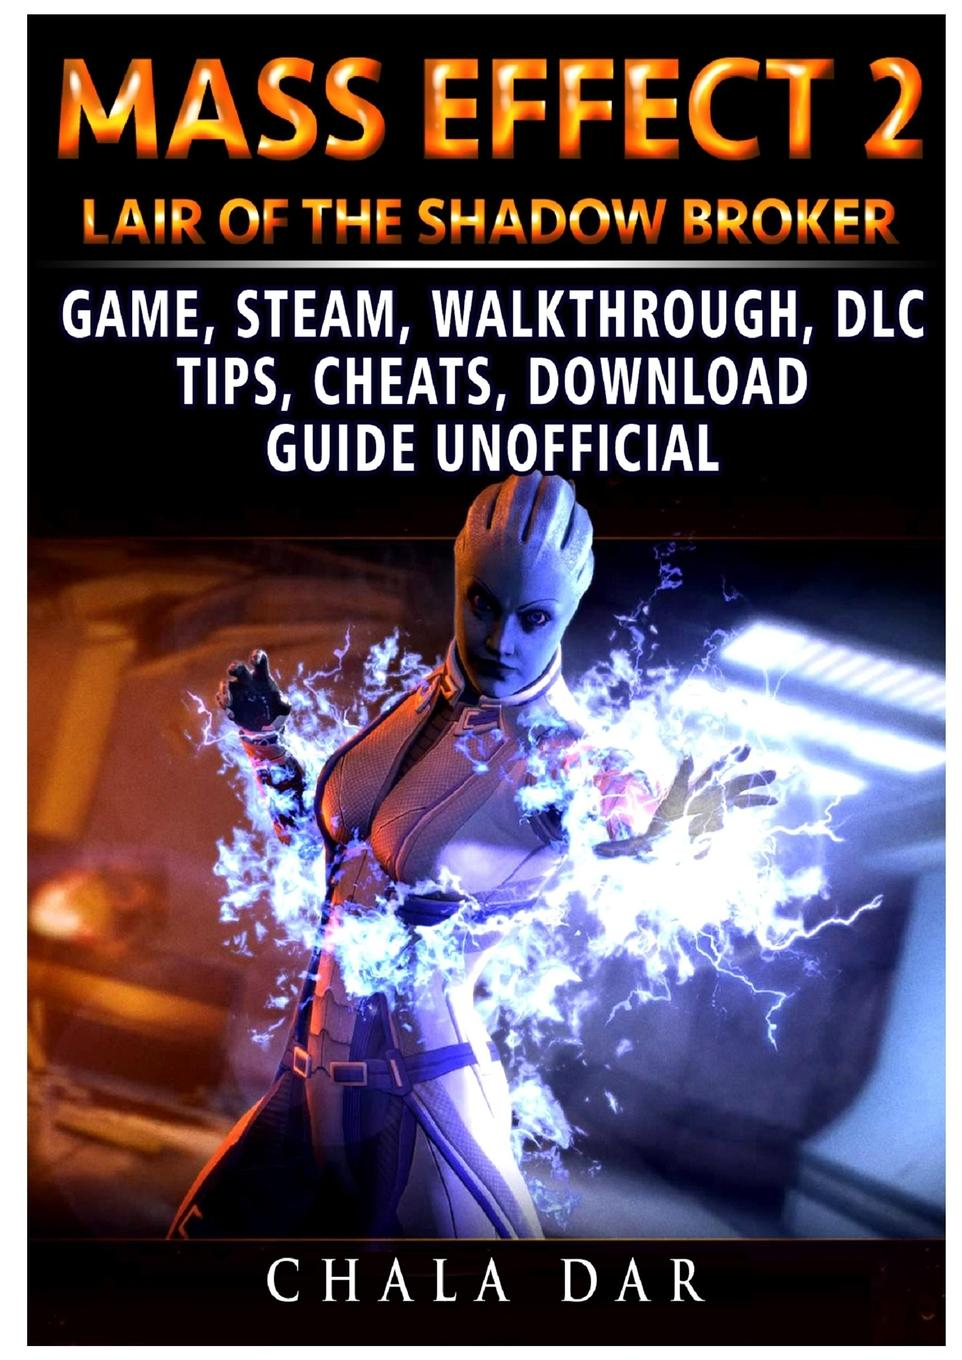 где купить Chala Dar Mass Effect 2 Lair of the Shadow Broker Game, Steam, Walkthrough, DLC, Tips Cheats, Download Guide Unofficial по лучшей цене